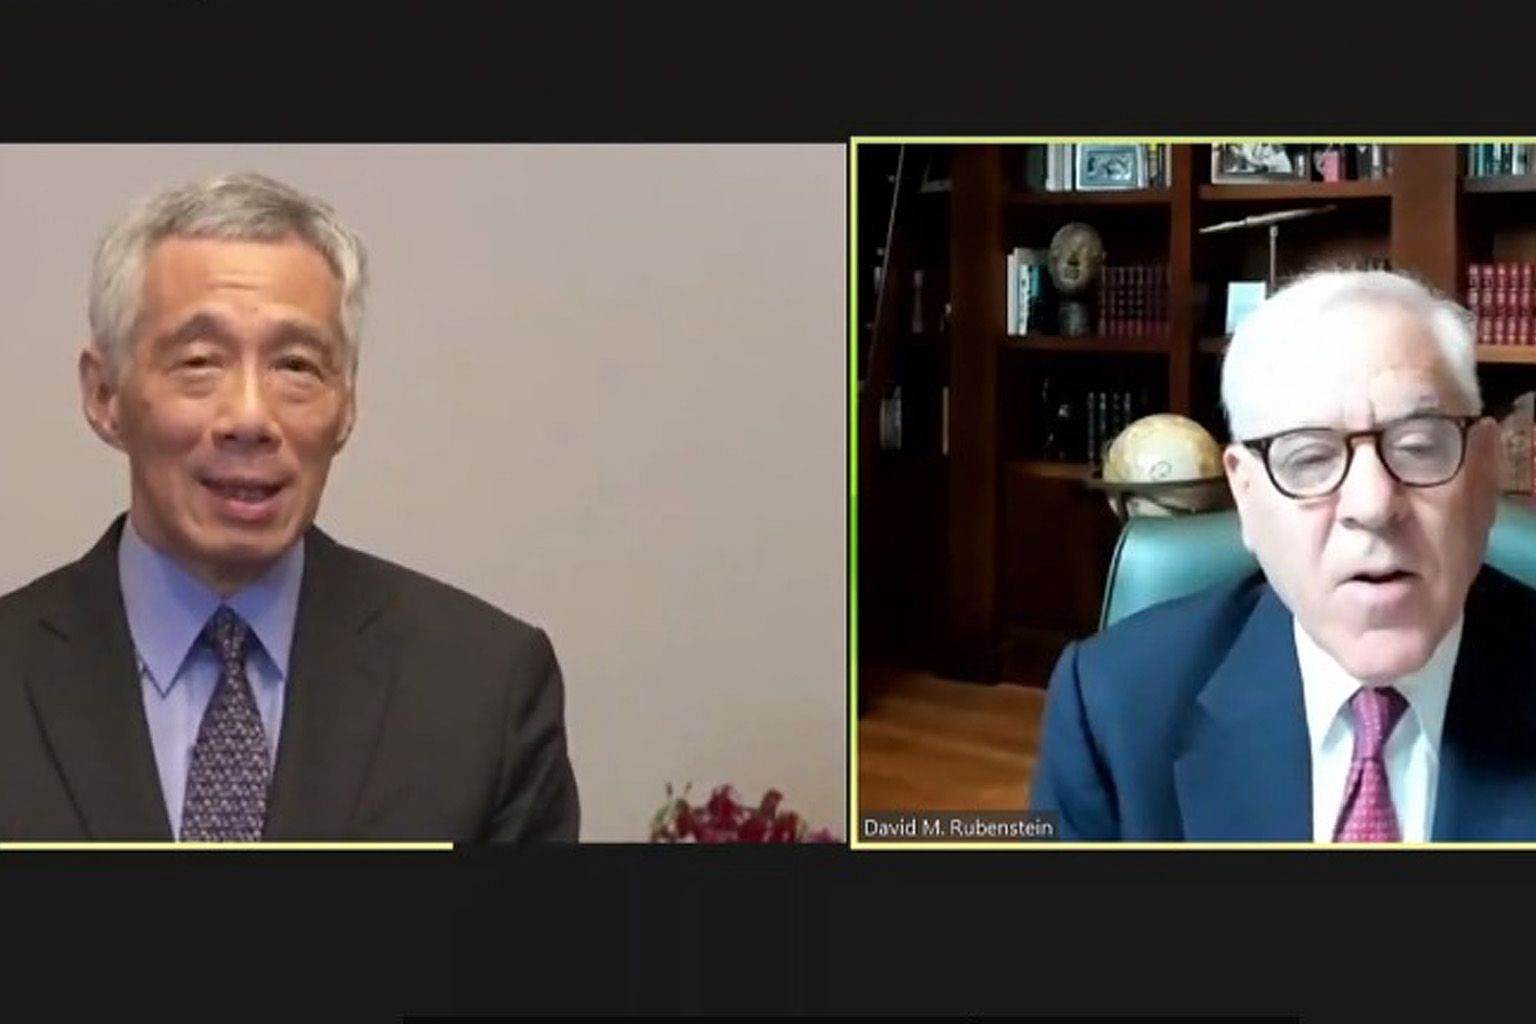 Prime Minister Lee Hsien Loong speaking to American businessman David Rubenstein during the interview hosted by the Atlantic Council yesterday. Worries about the direction of US-China ties featured heavily in the interview on Asia's response to tensi